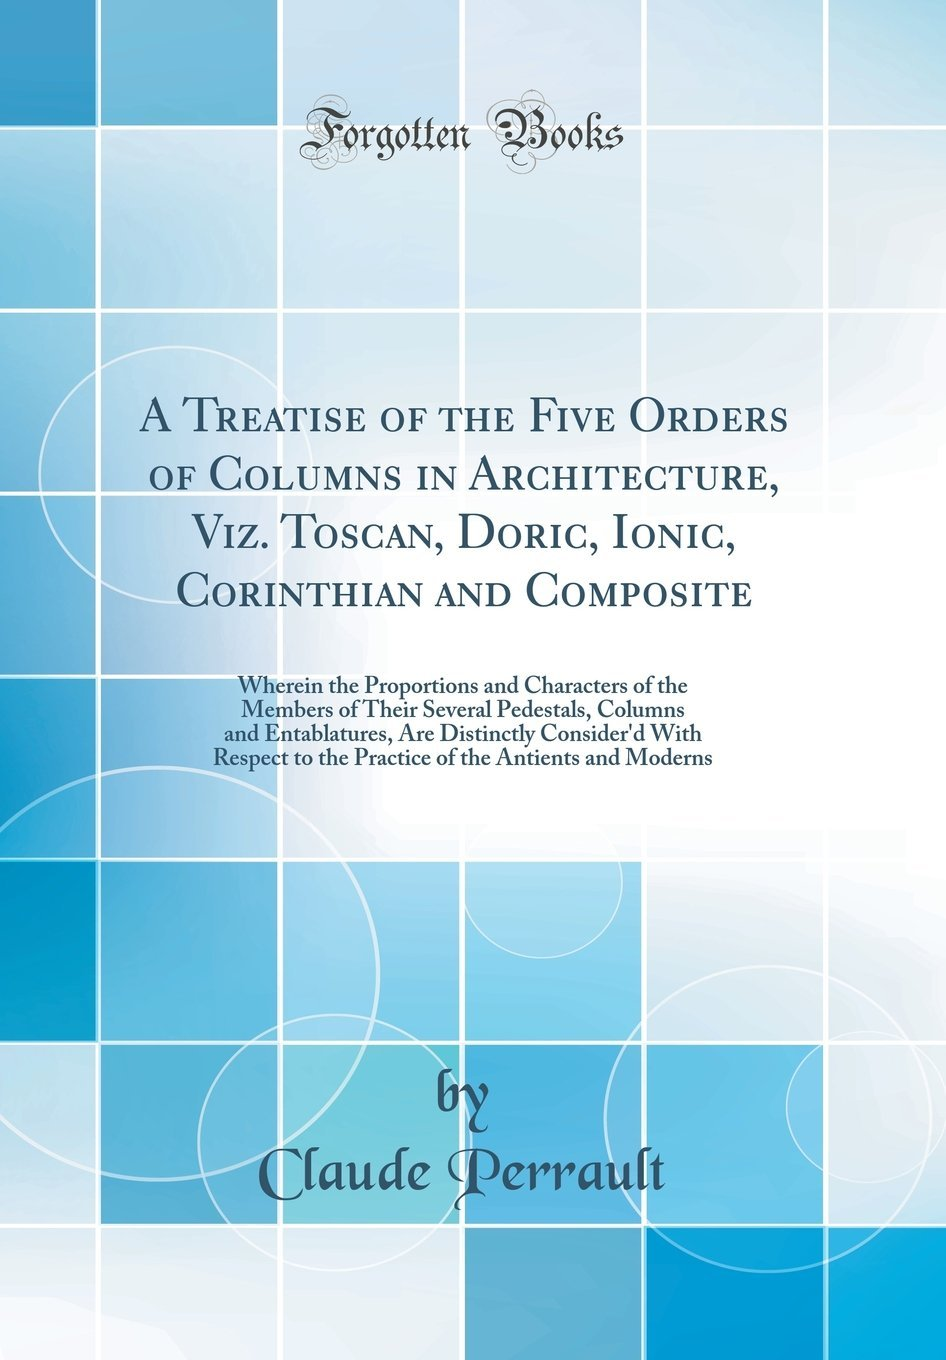 Read Online A Treatise of the Five Orders of Columns in Architecture, Viz. Toscan, Doric, Ionic, Corinthian and Composite: Wherein the Proportions and Characters ... Are Distinctly Consider'd with Respe pdf